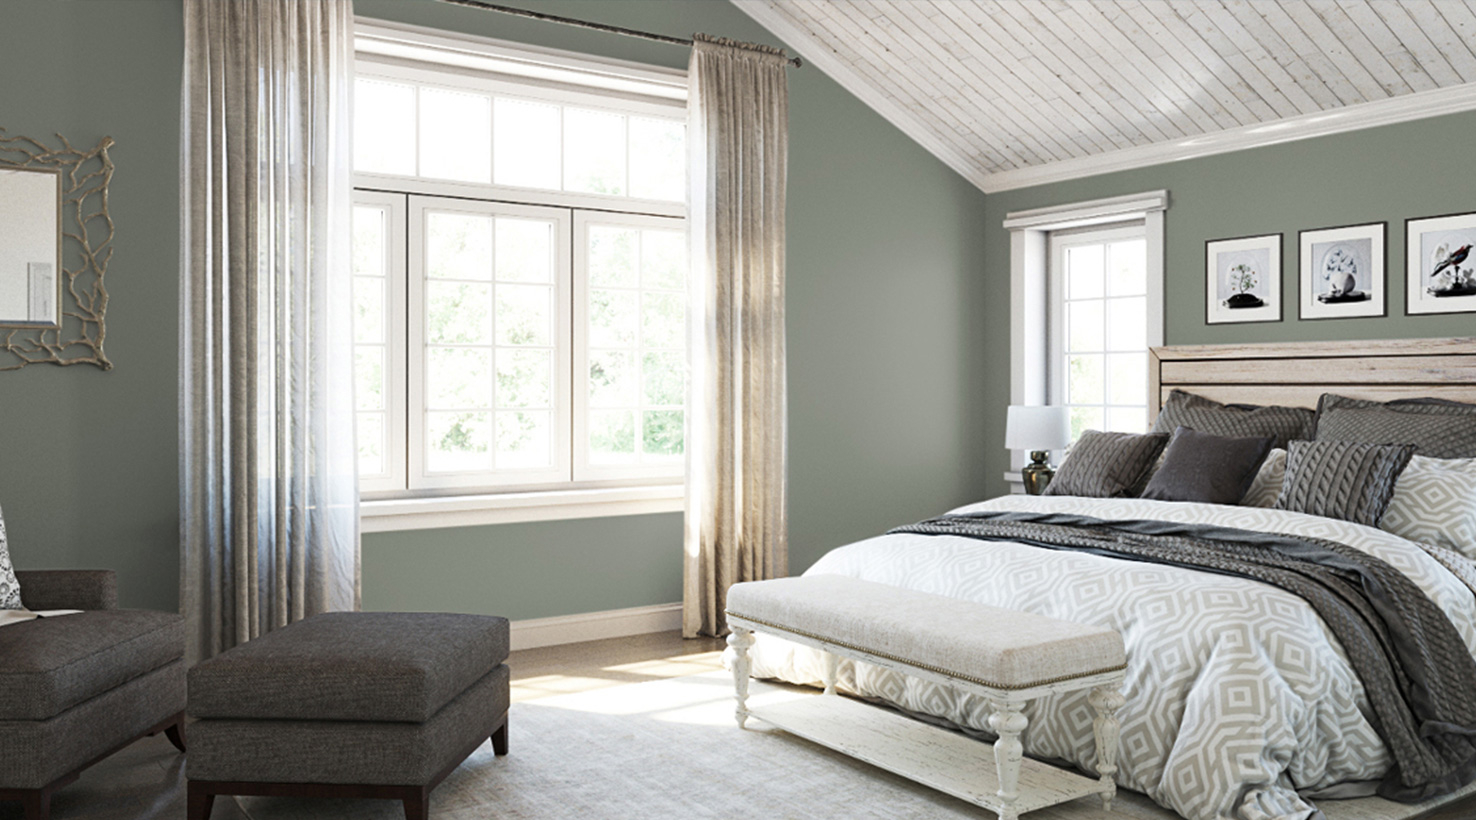 Bedroom Paint Color Ideas Inspiration Gallery Sherwin Williams regarding dimensions 1476 X 820